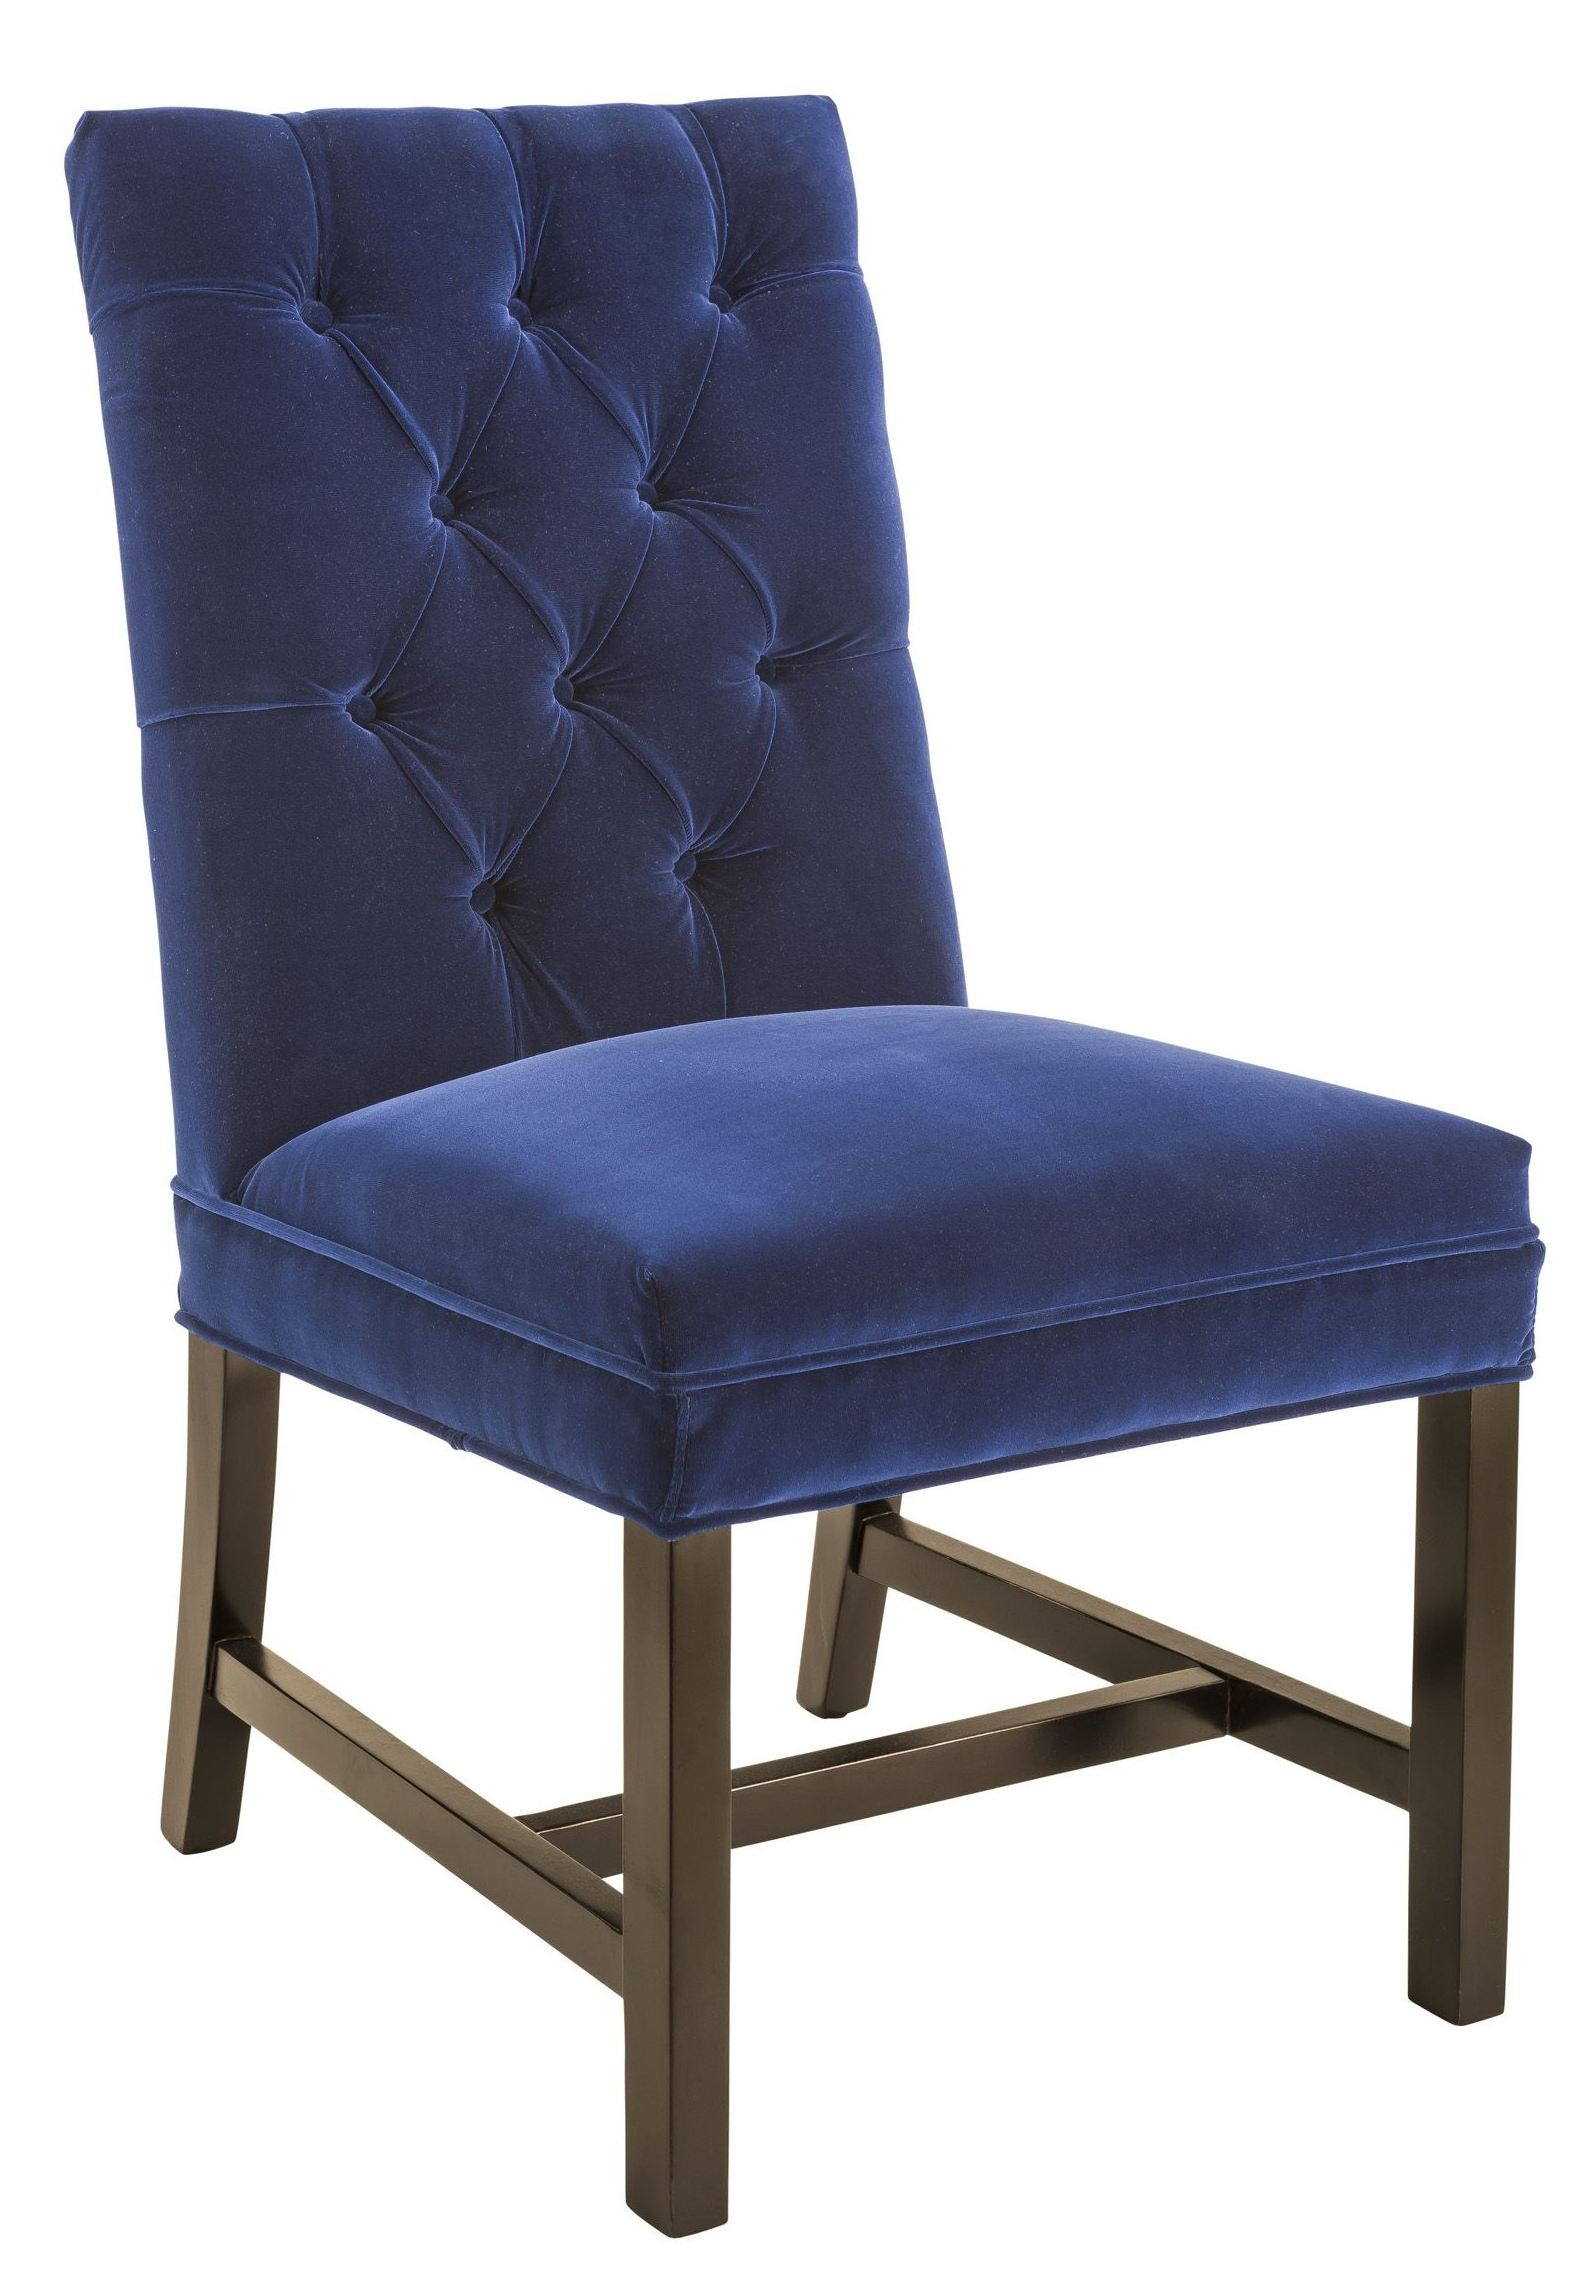 Orwalk giotto navy fabric dining chair 100741 sunpan for Fabric chairs dining room